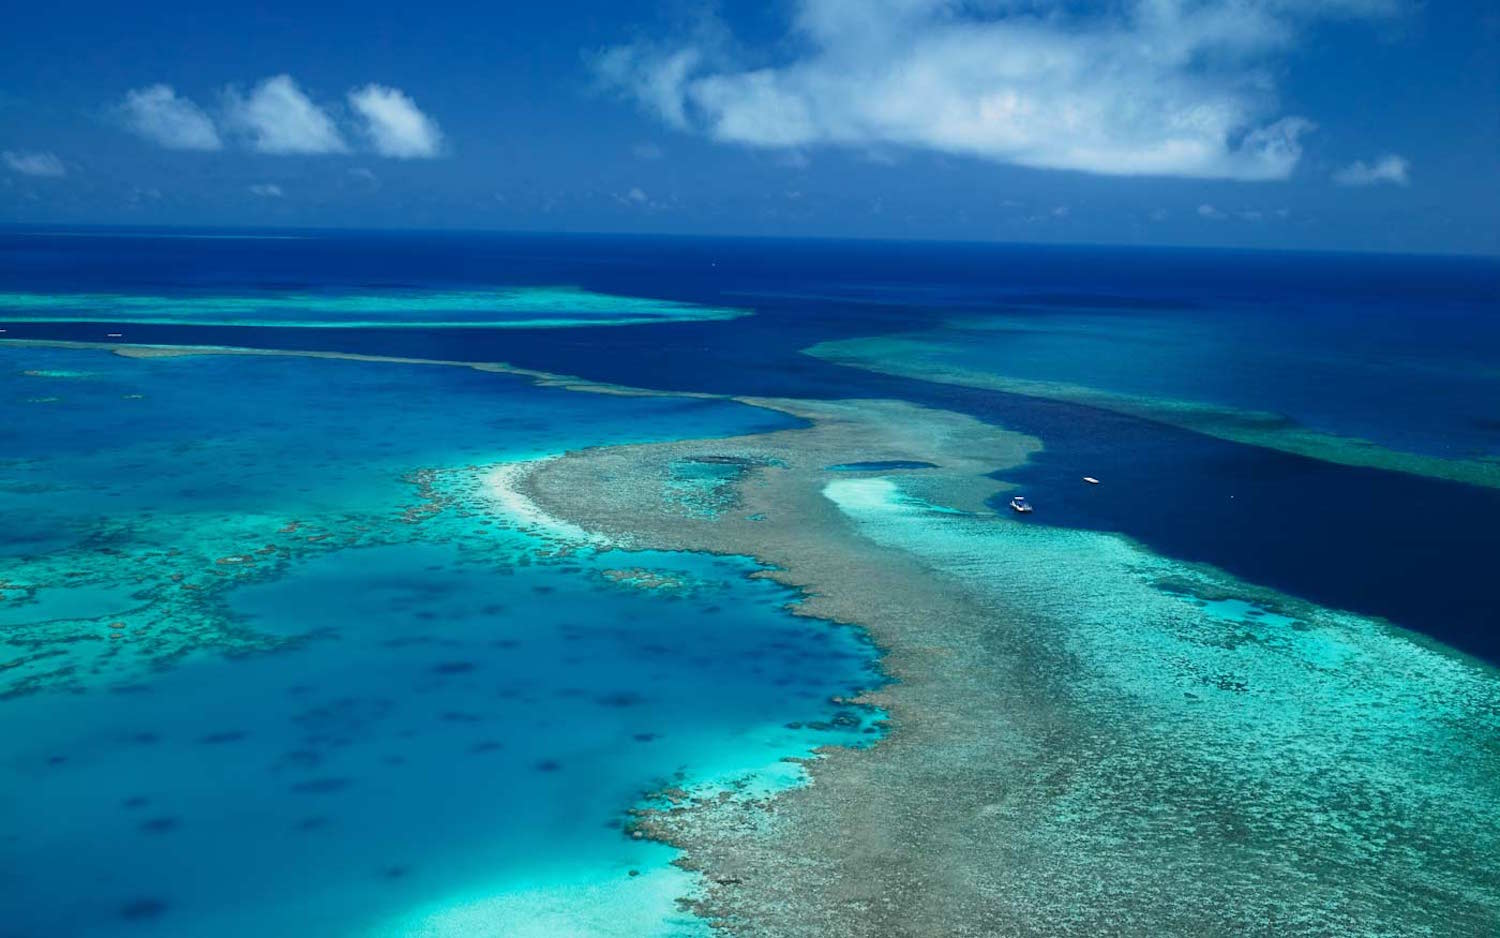 Aerial view of the Great Barrier Reef. Image source: Qualia